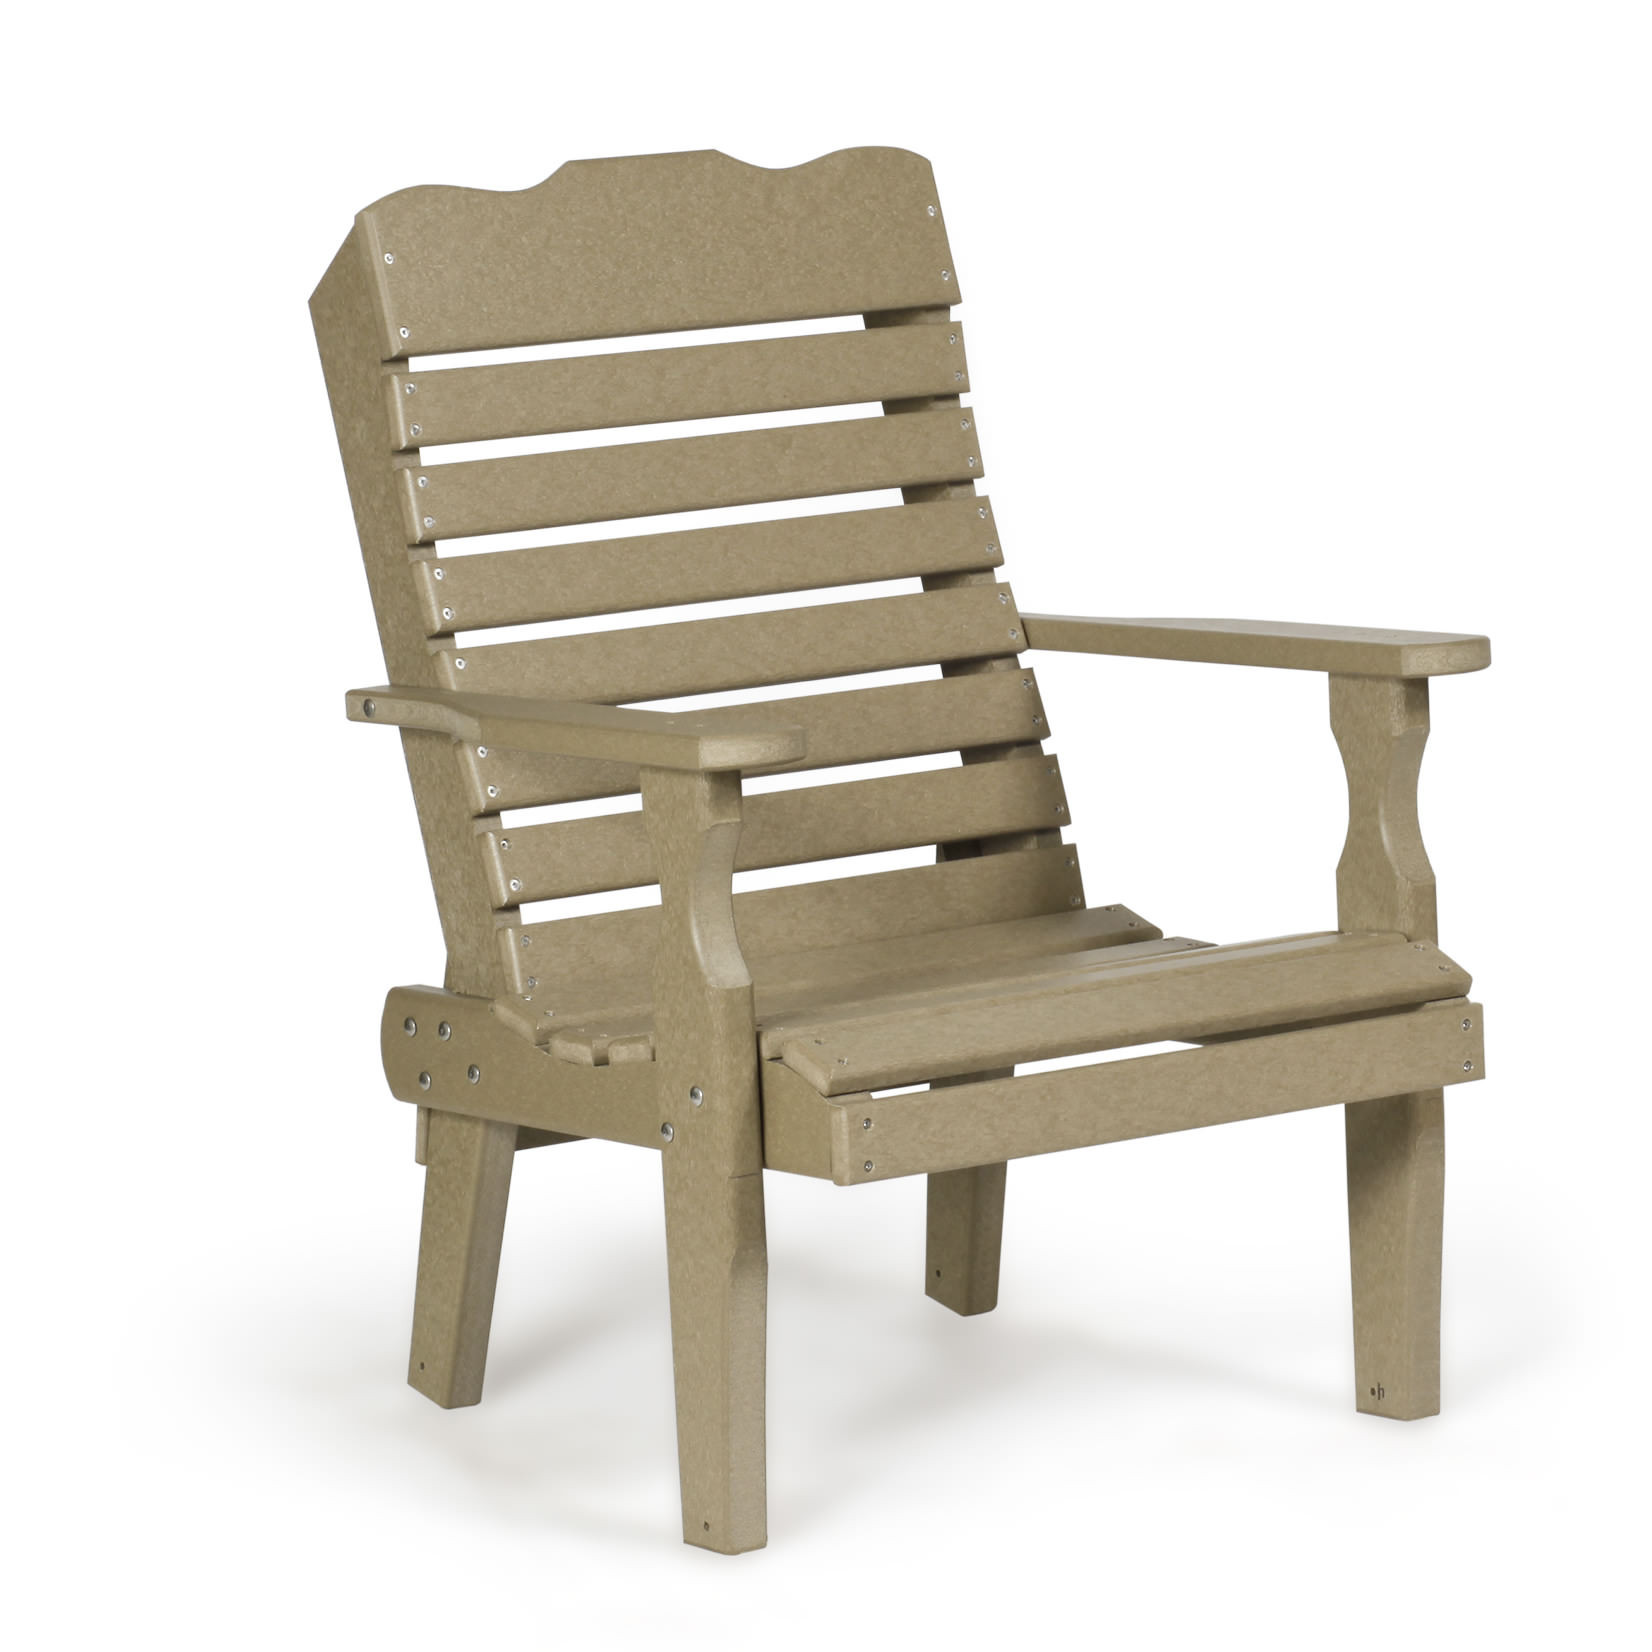 Poly Lumber POLYWOOD Casual Chairs